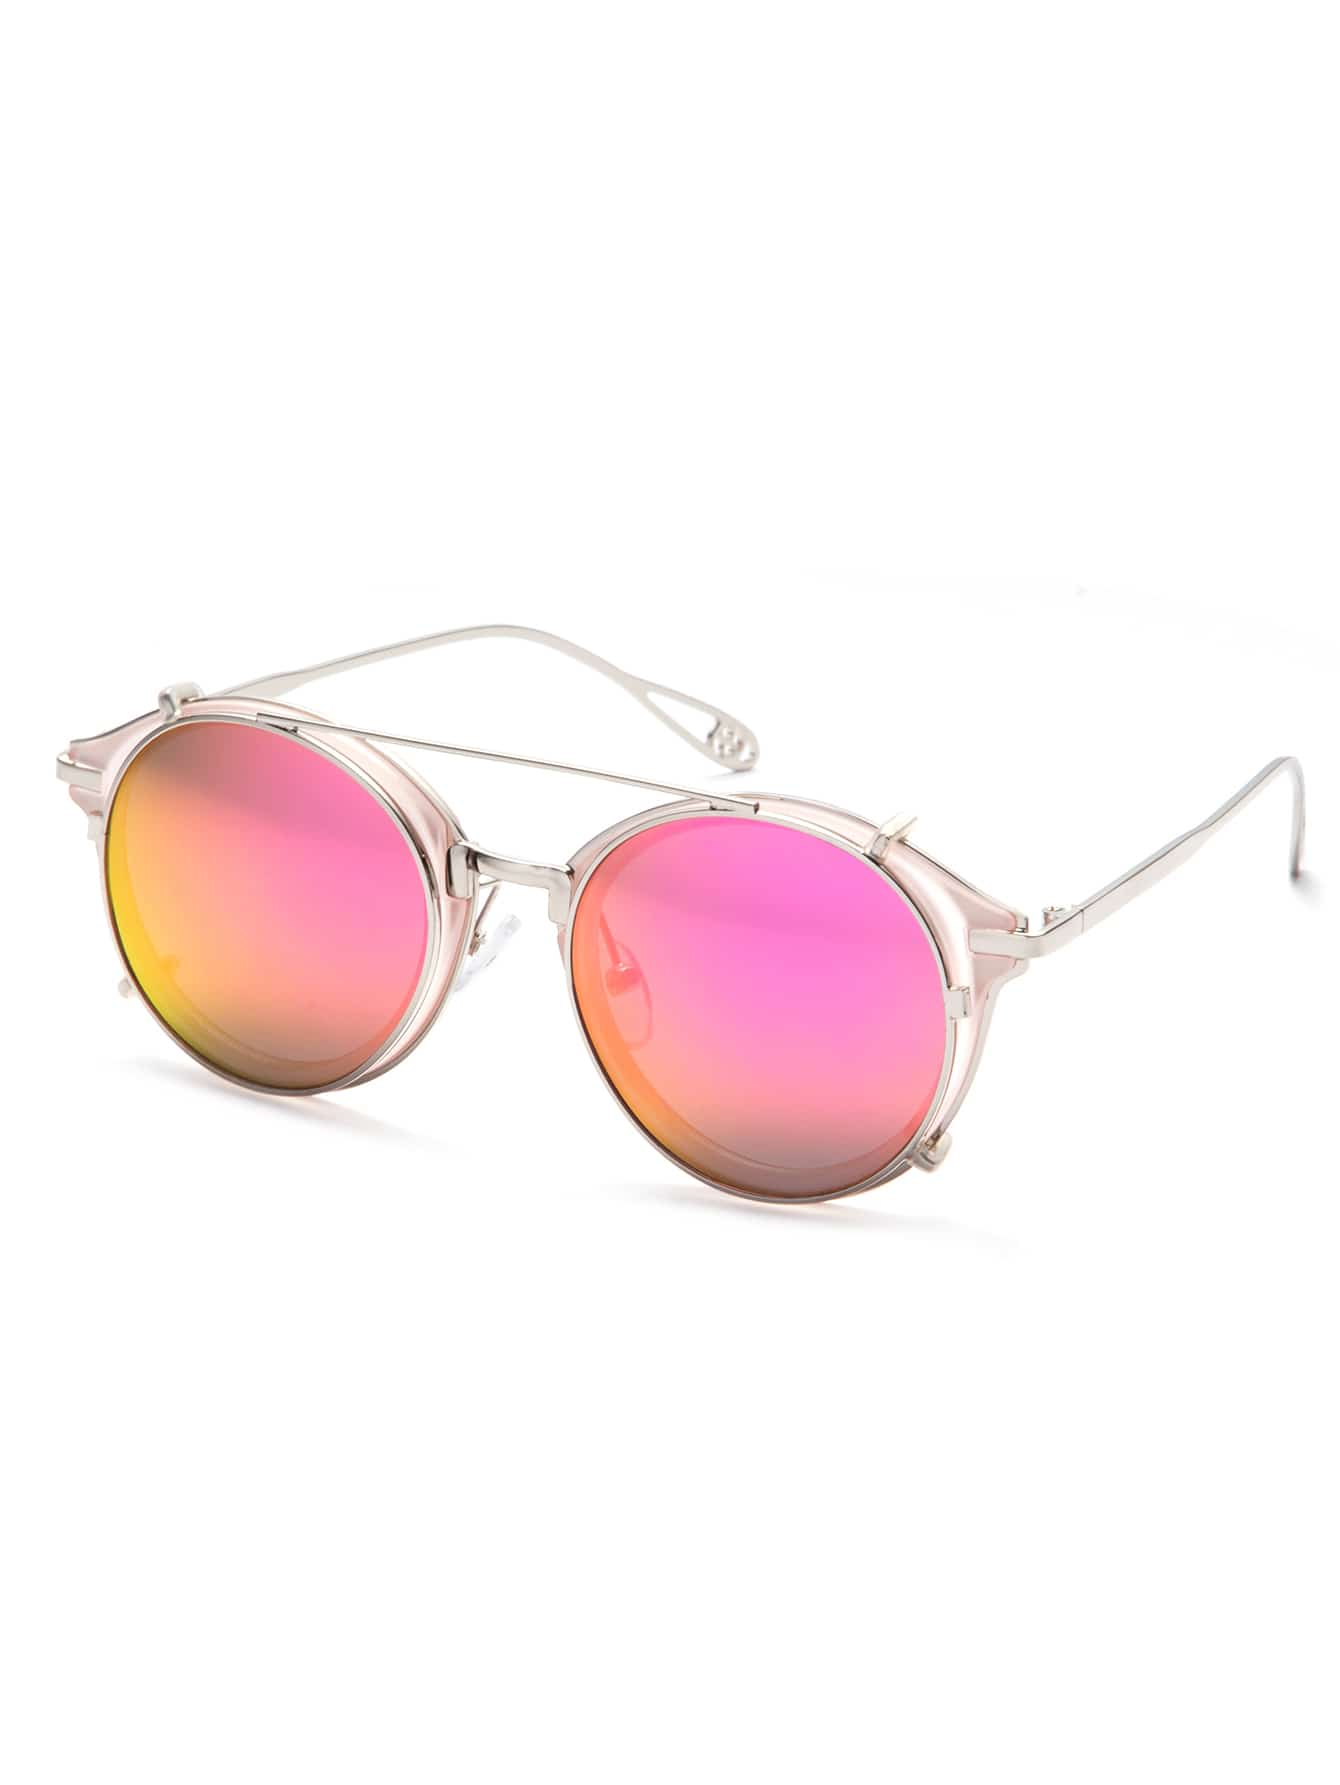 Pink Metal Frame Double Bridge SunglassesPink Metal Frame Double Bridge Sunglasses<br><br>color: Pink<br>size: None